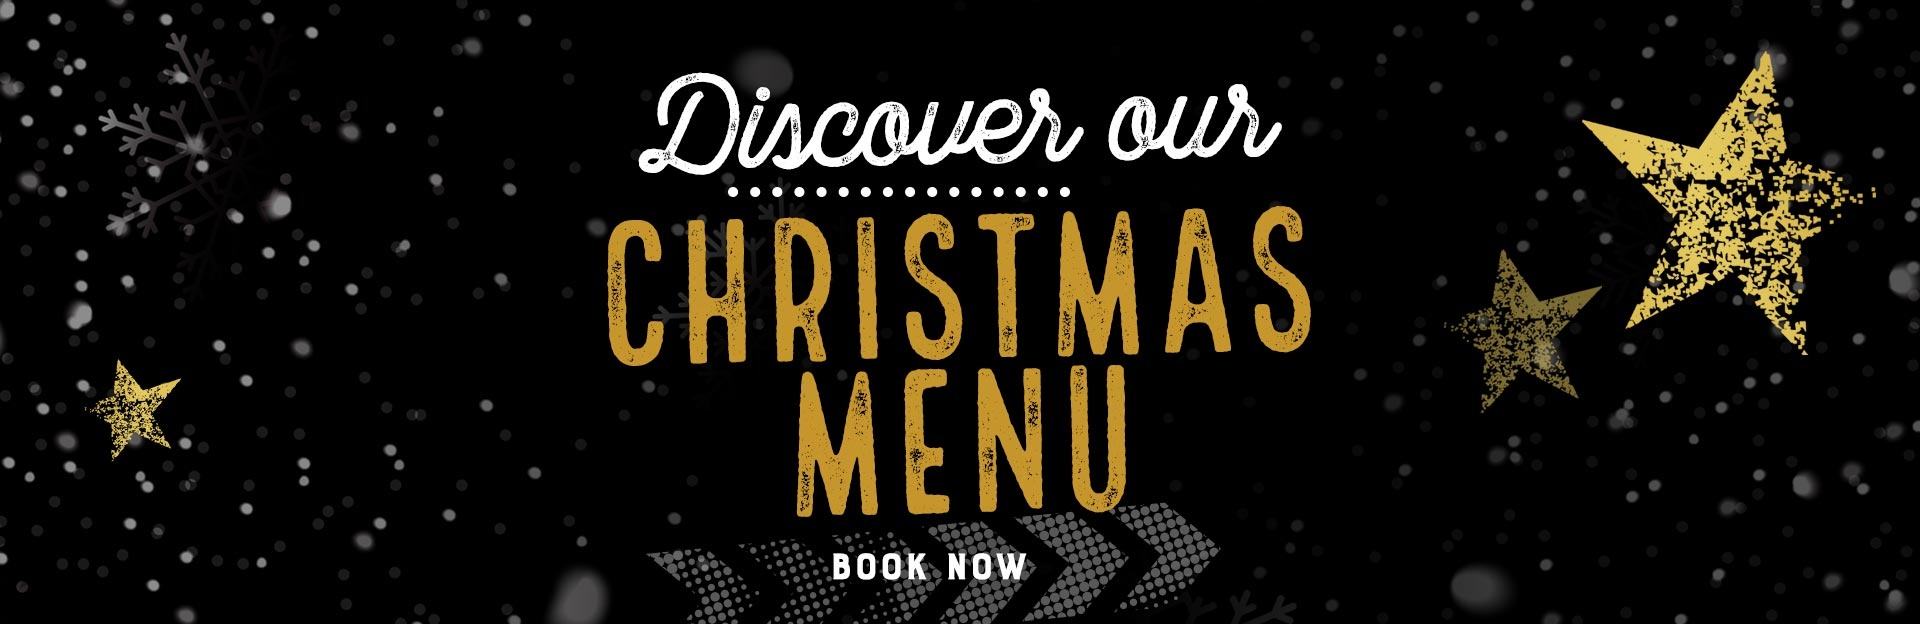 Christmas at Duke of York